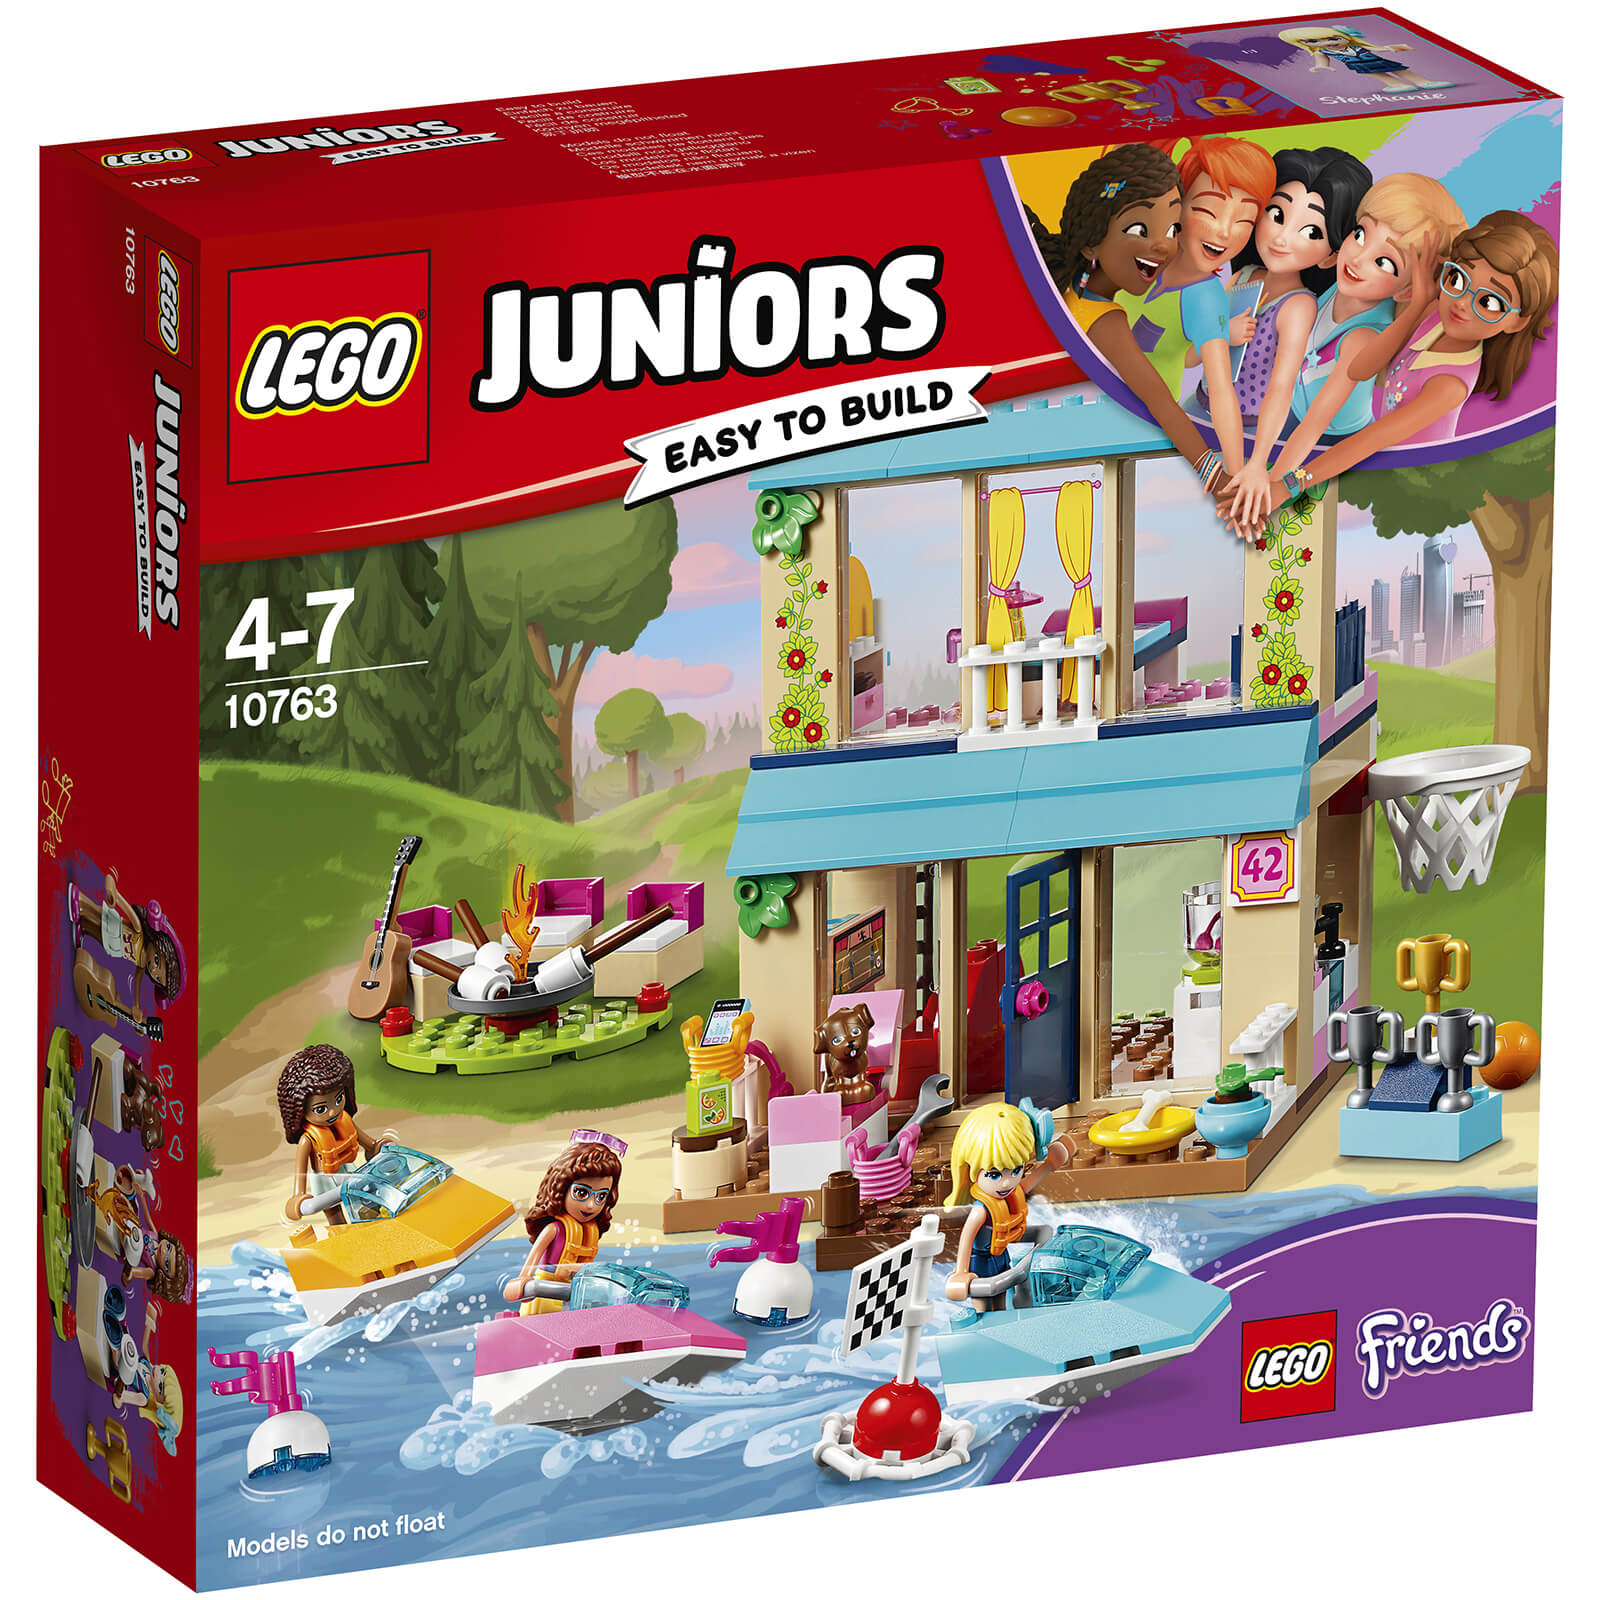 LEGO Juniors Friends: Stephanie